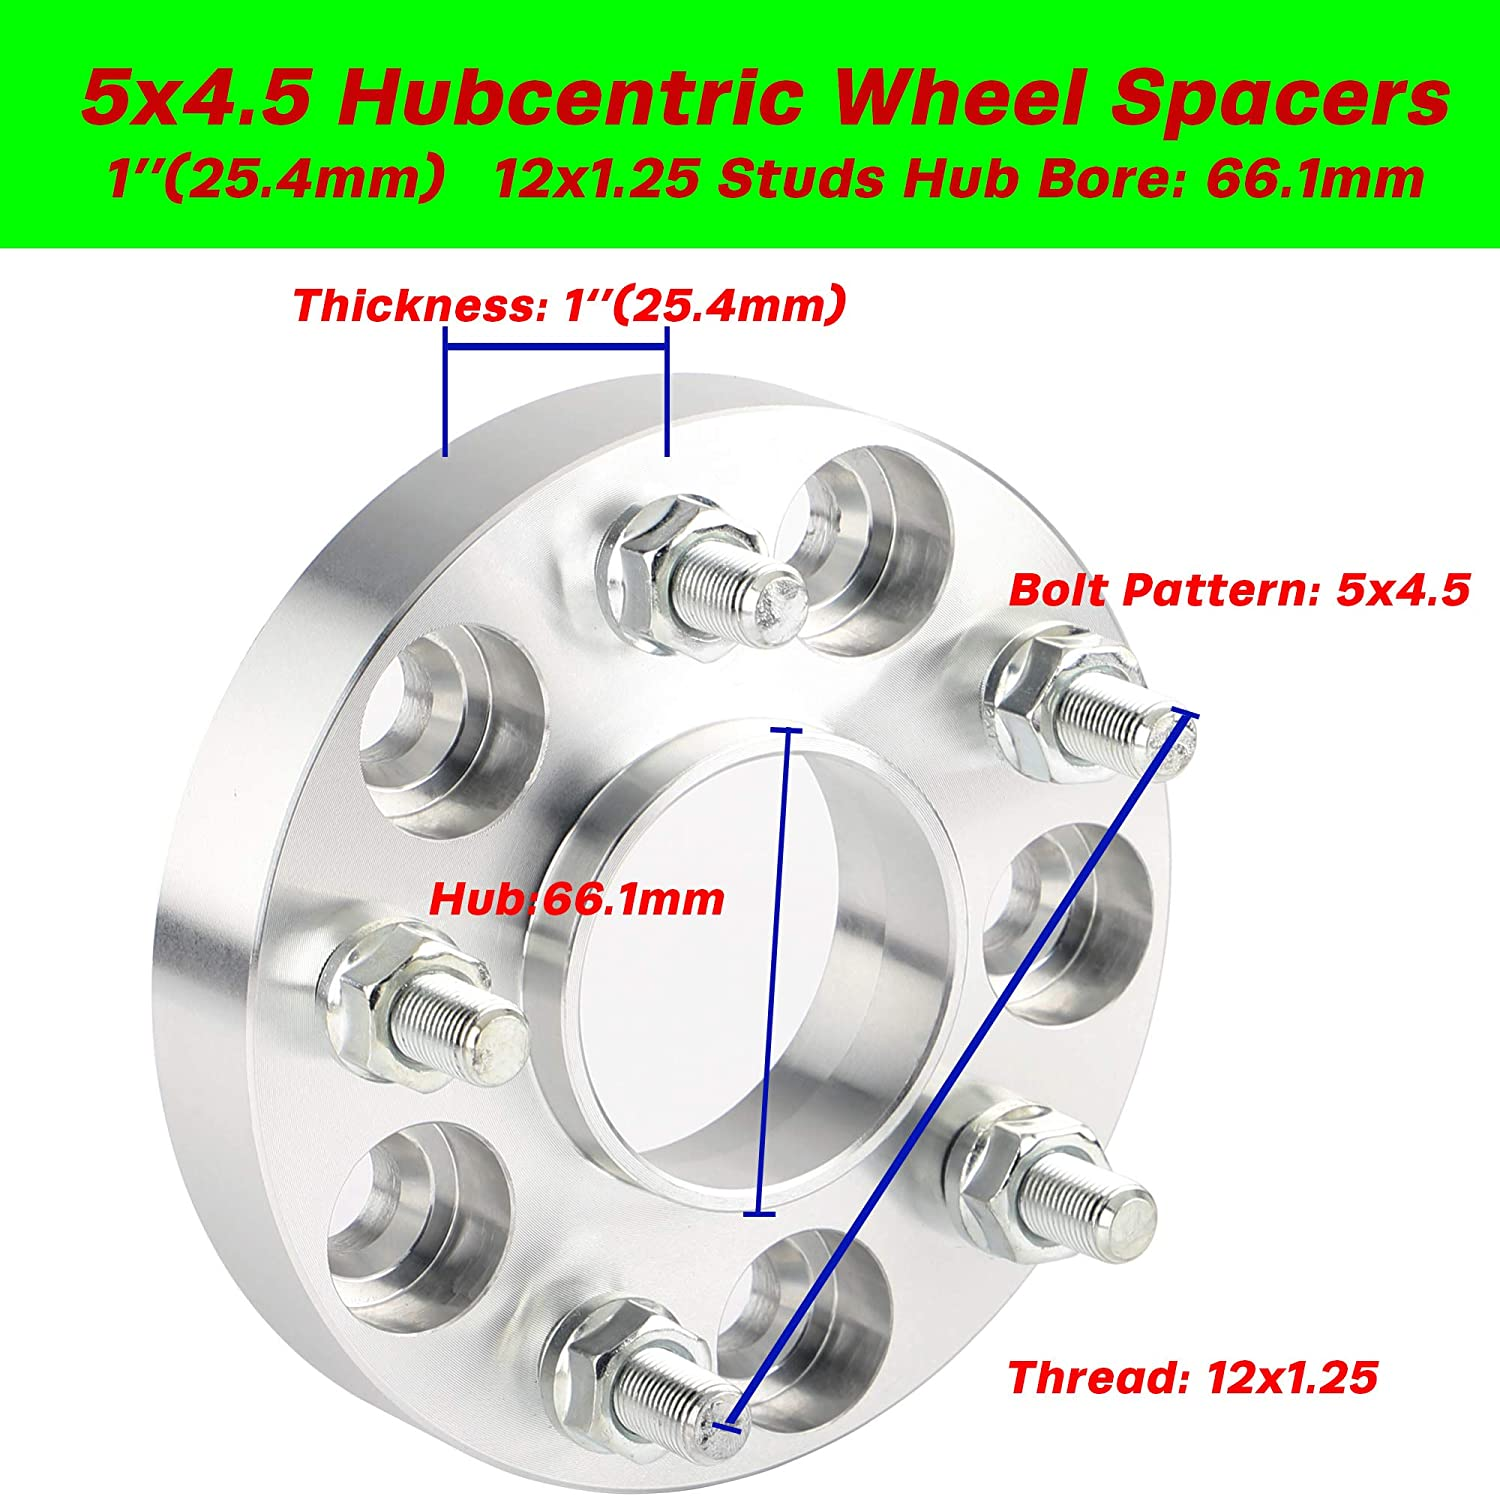 1 inch 66.1mm CB Hubcentric Wheel Spacers 5x4.5 for 350Z 370Z G35 G37 with 12x1.25 Studs Rying 5x114.3 Wheel Spacers for Nissan Inifinit Selected Vehicles Bonus Thread-Locking Adhesives